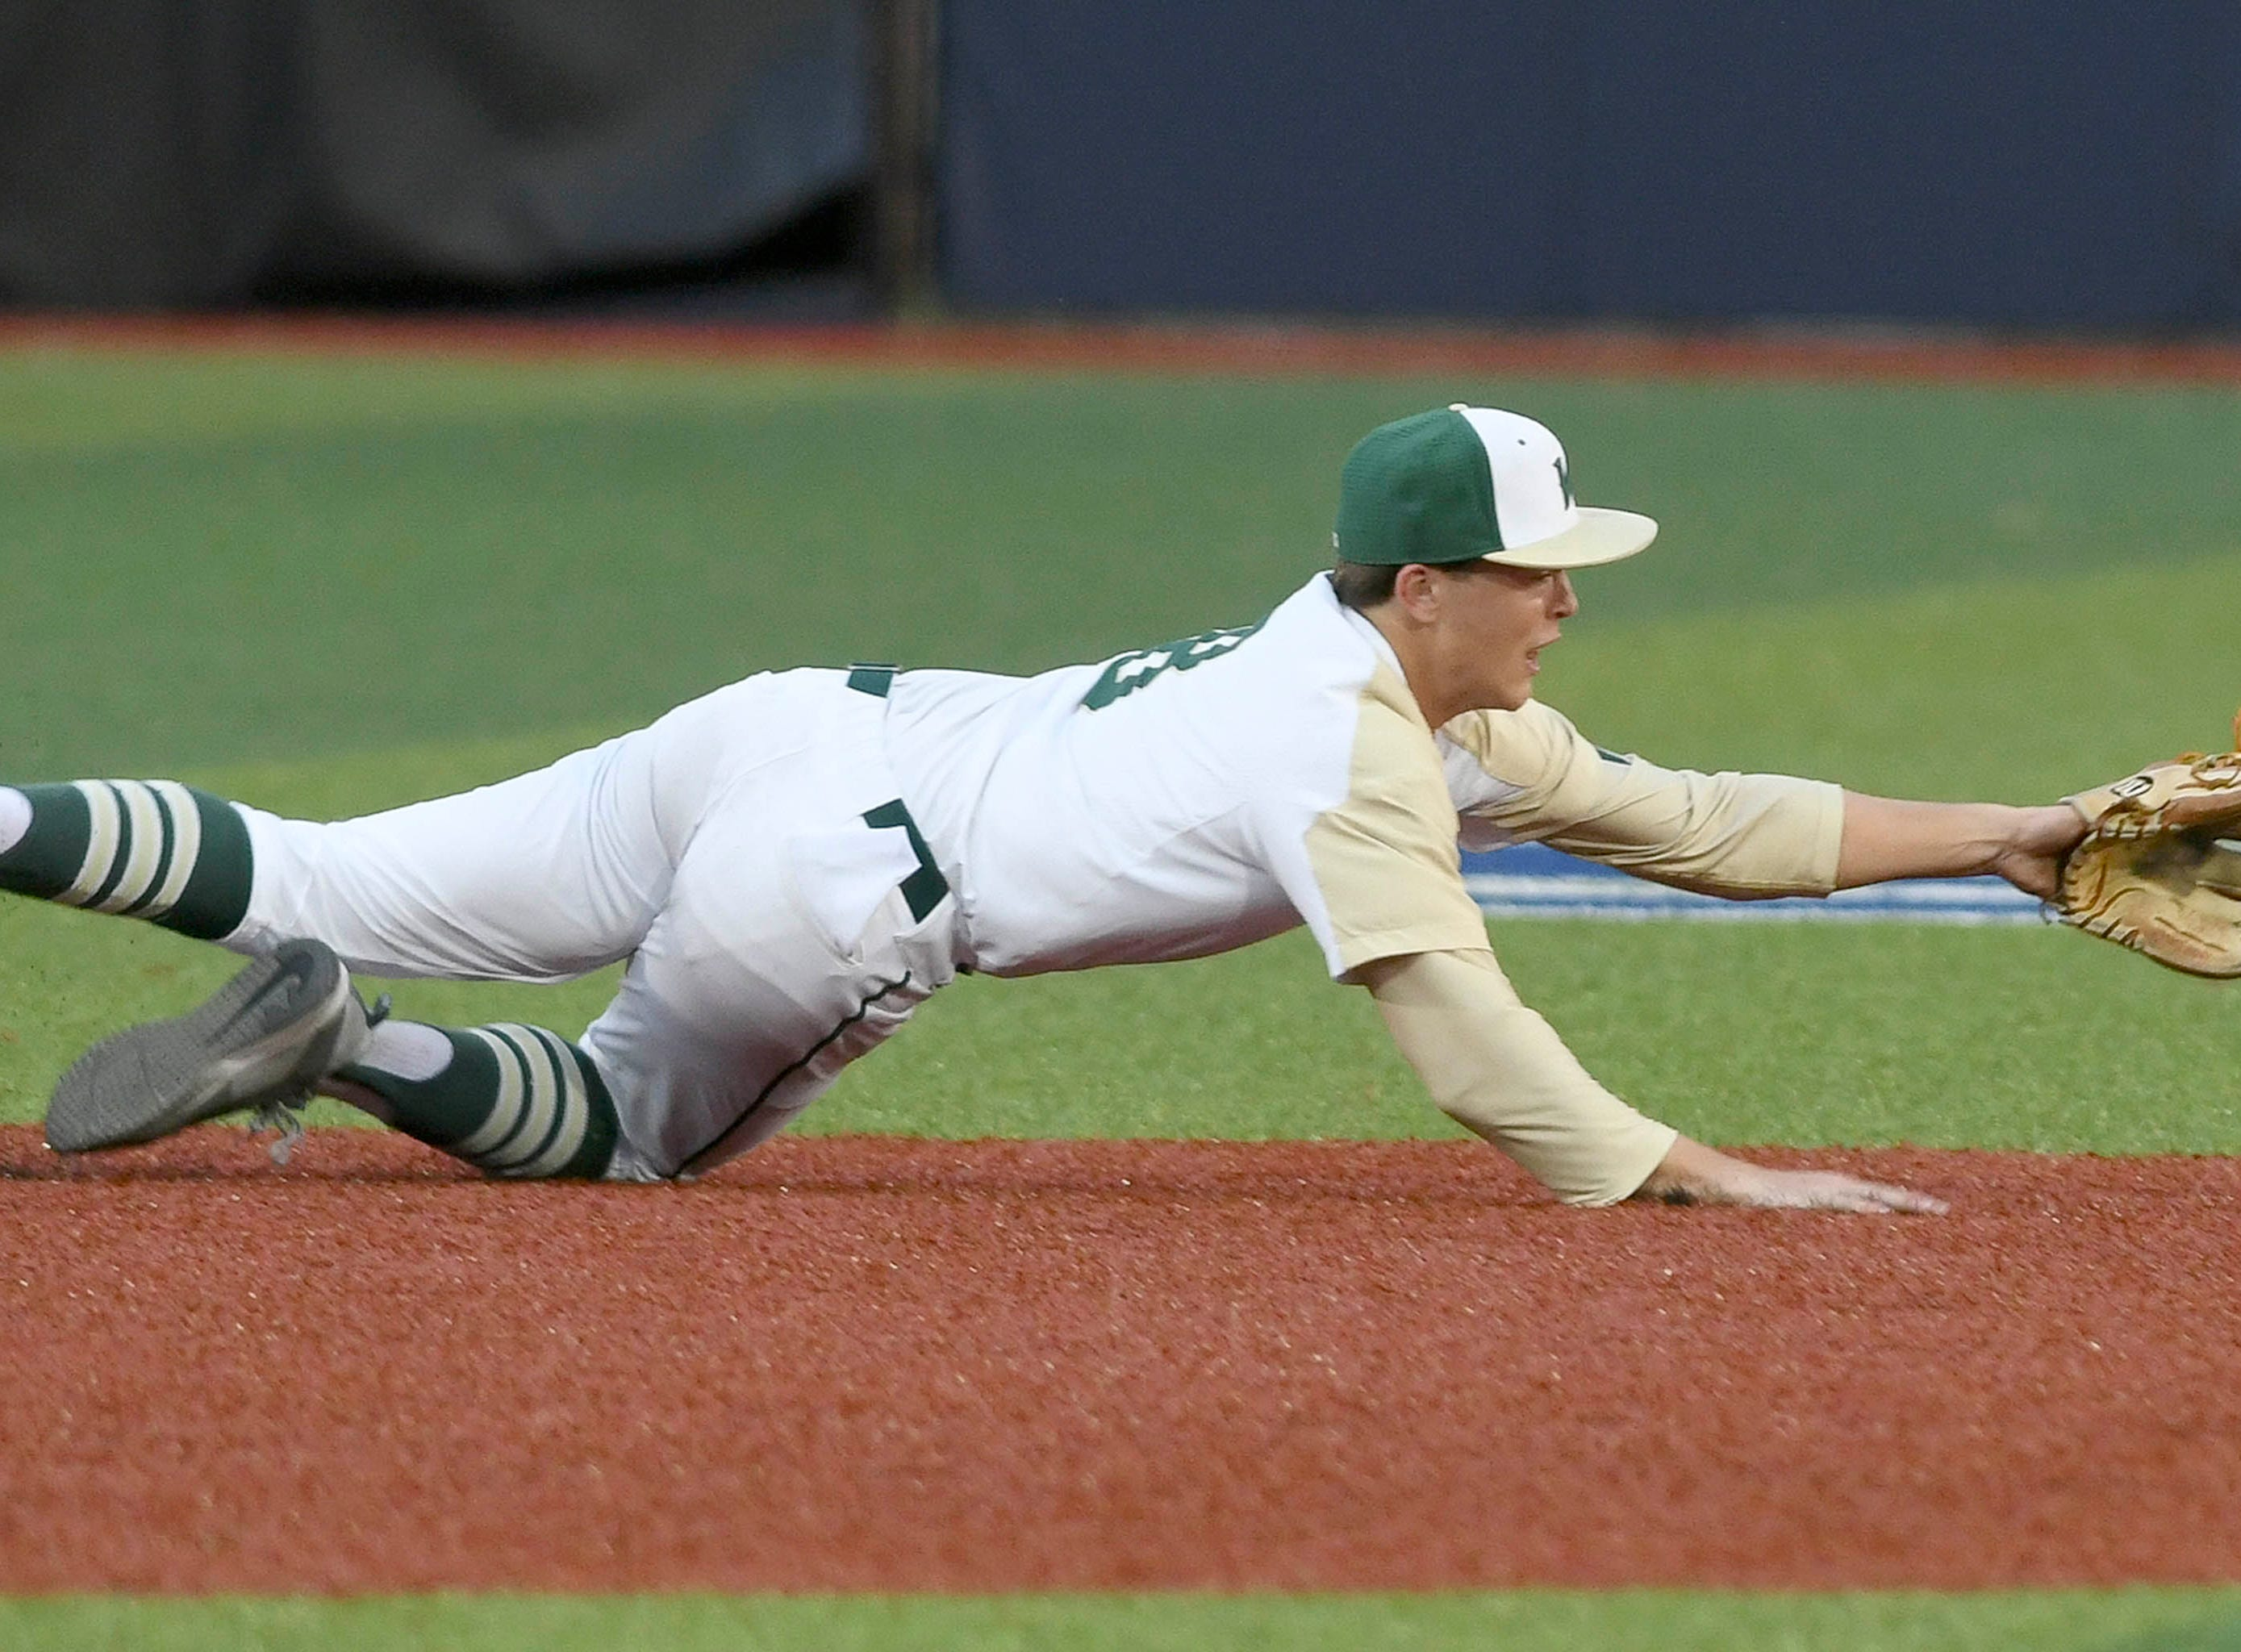 Andrew Brait of Viera dives for a ball during their game against Woodford County Wednesday.